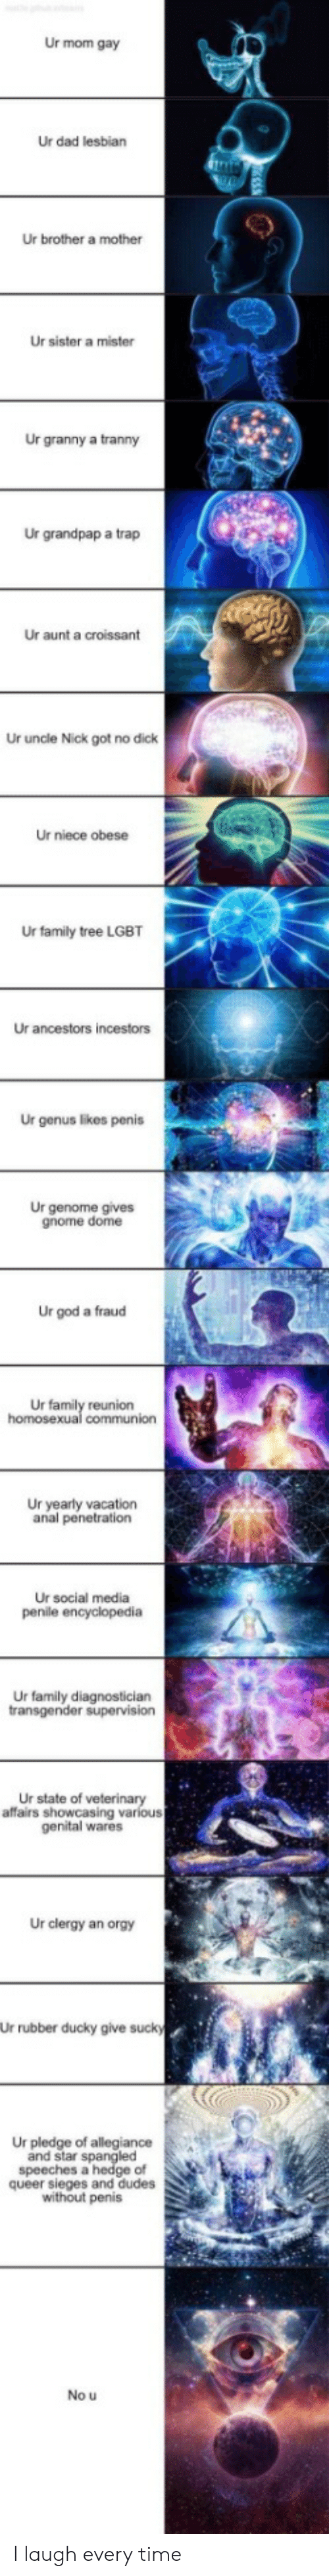 granny: Ur mom gay  Ur dad lesbian  Ur brother a mother  Ur sister a mister  Ur granny a tranny  Ur grandpap a trap  Ur aunt a croissant  Ur uncle Nick got no dick  Ur niece obese  Ur family tree LGBT  Ur ancestors incestors  Ur genus likes penis  Ur genome gives  gnome dome  Ur god a fraud  Ur family reunion  homosexual communion  Ur yearly vacation  anal penetration  Ur social media  penile encyclopedia  Ur family diagnostician  transgender supervision  Ur state of veterinary  affairs showcasing various  genital wares  Ur clergy an orgy  Ur rubber ducky give sucky  Ur pledge of allegiance  and star spangled  speeches a hedge of  queer sieges and dudes  without penis  No u I laugh every time